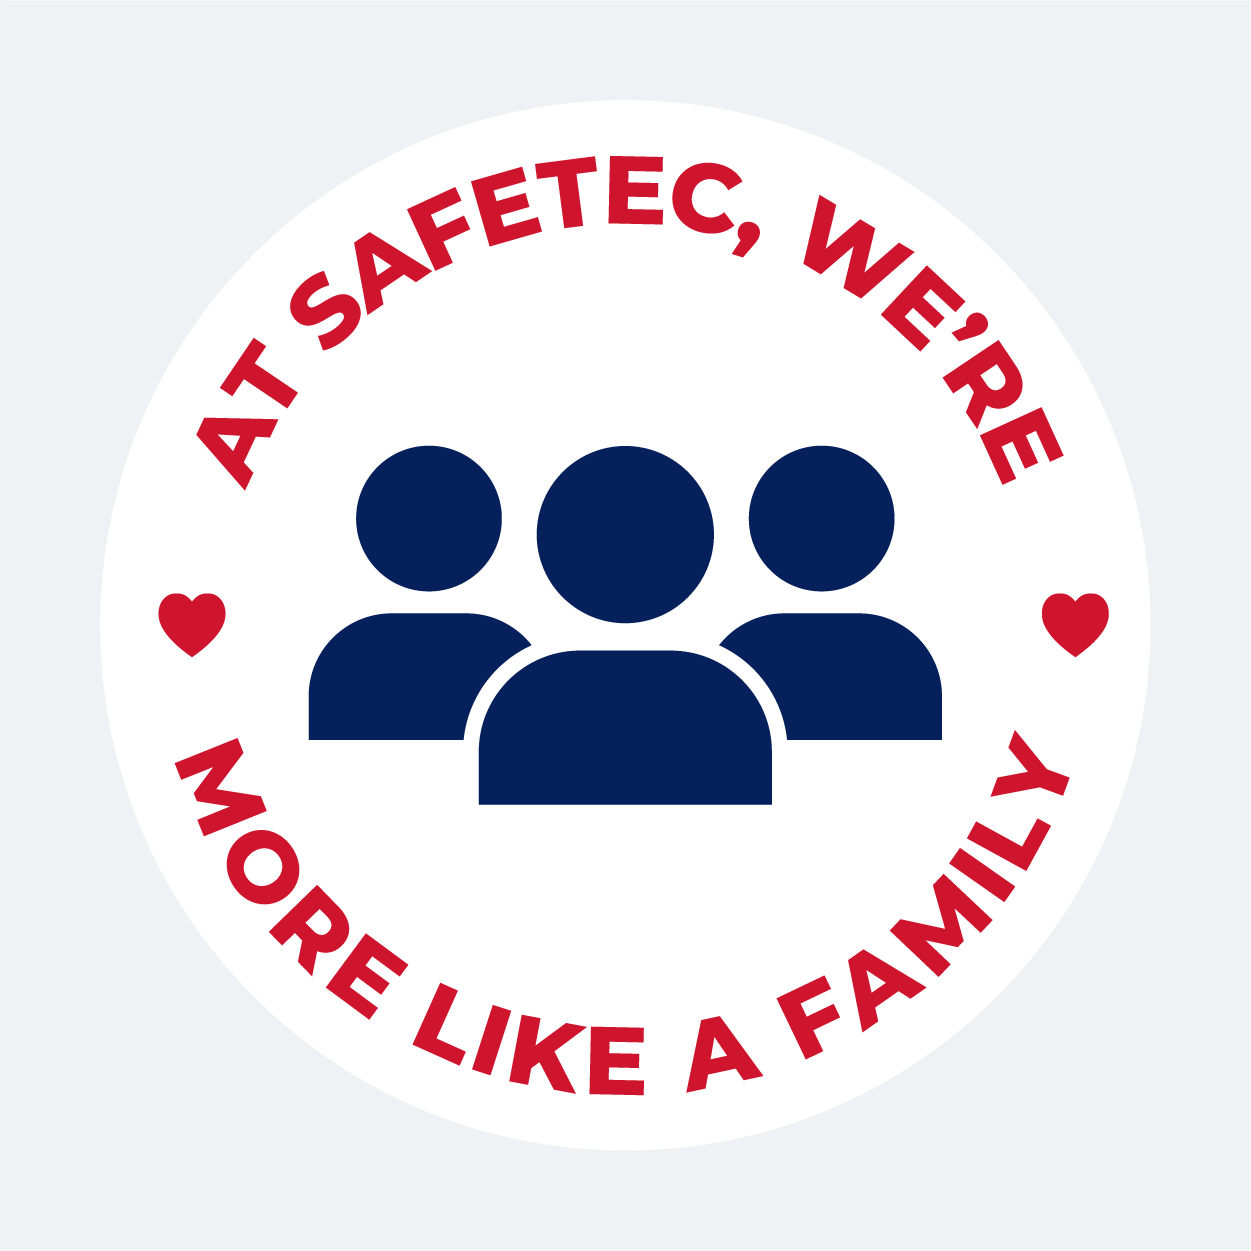 Safetec is investing in its people